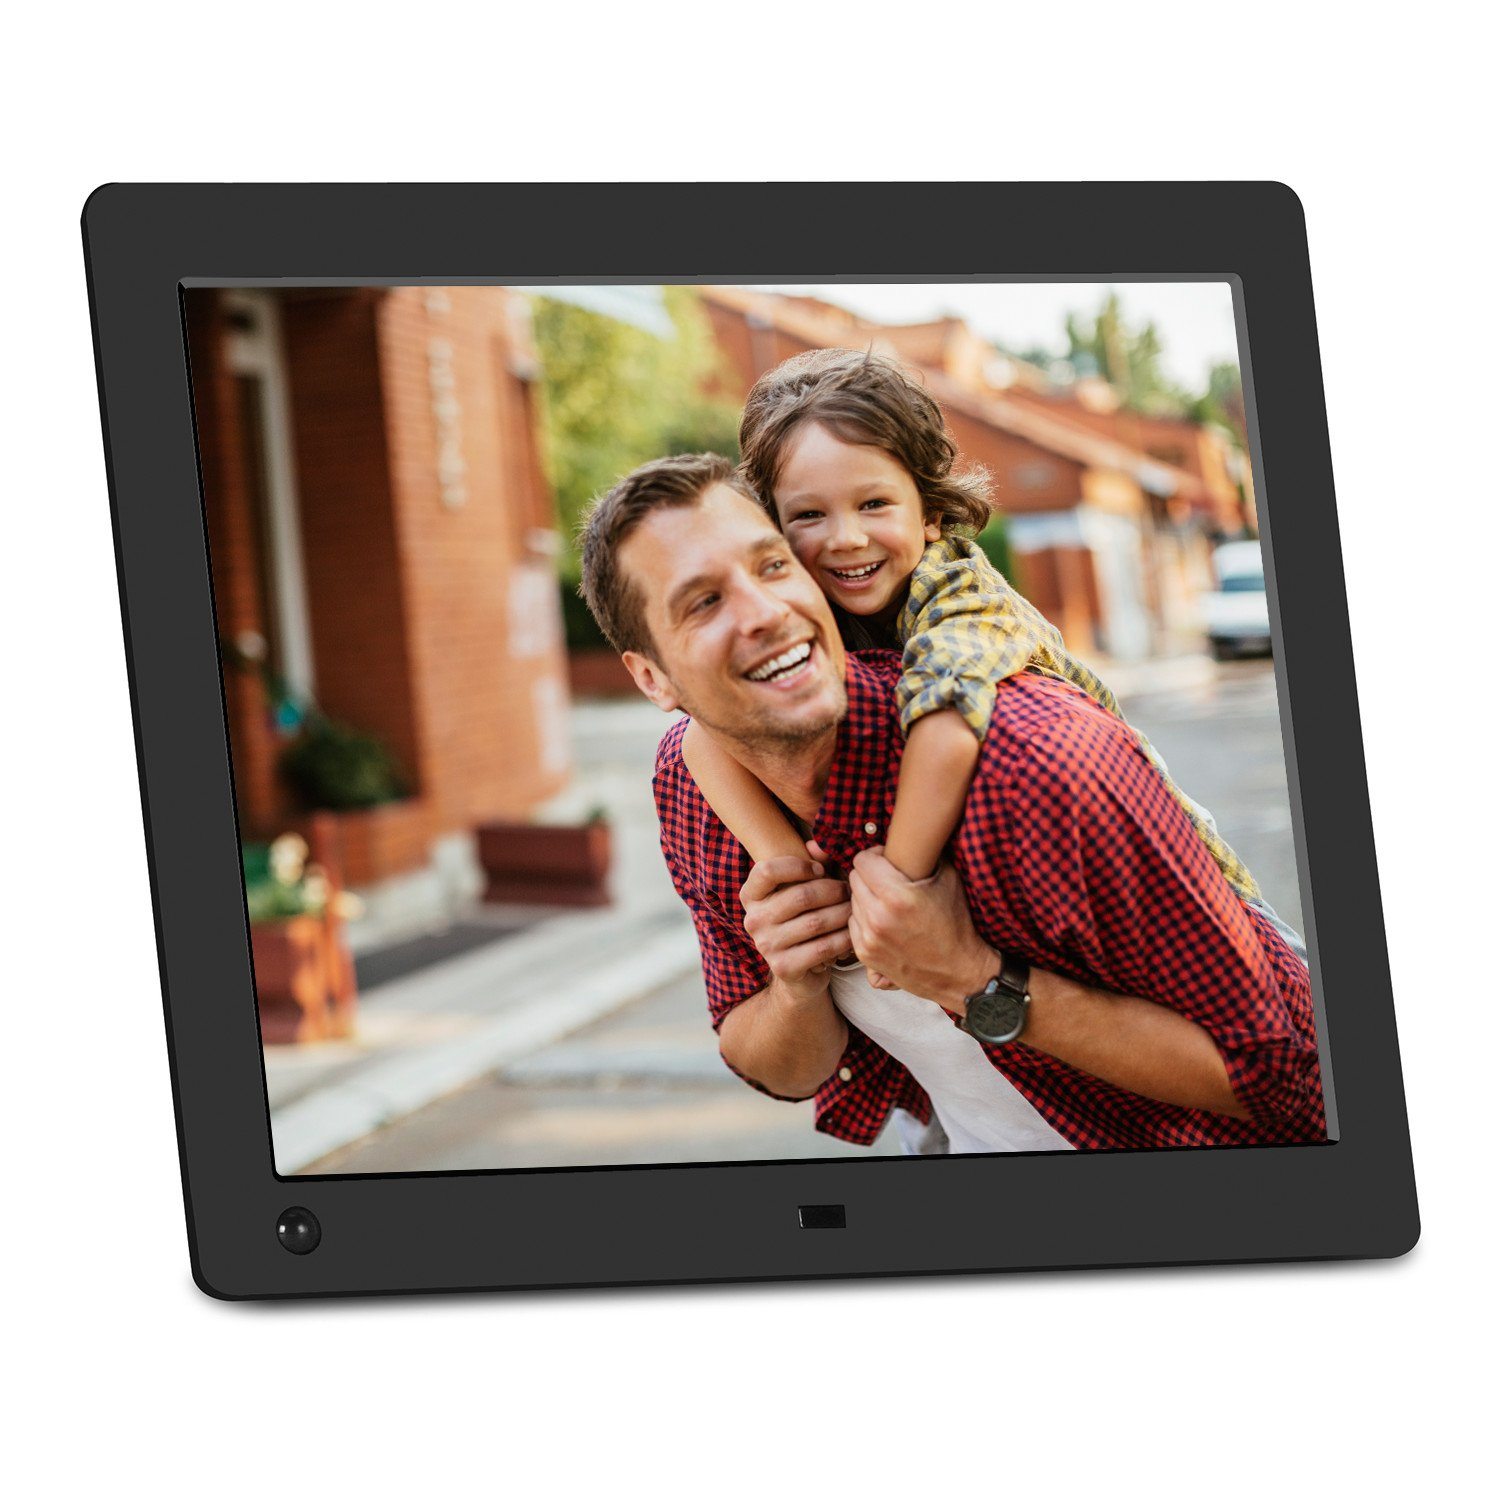 nix advance 10 inch digital photo hd video 720p frame with motion sensor 8gb usb